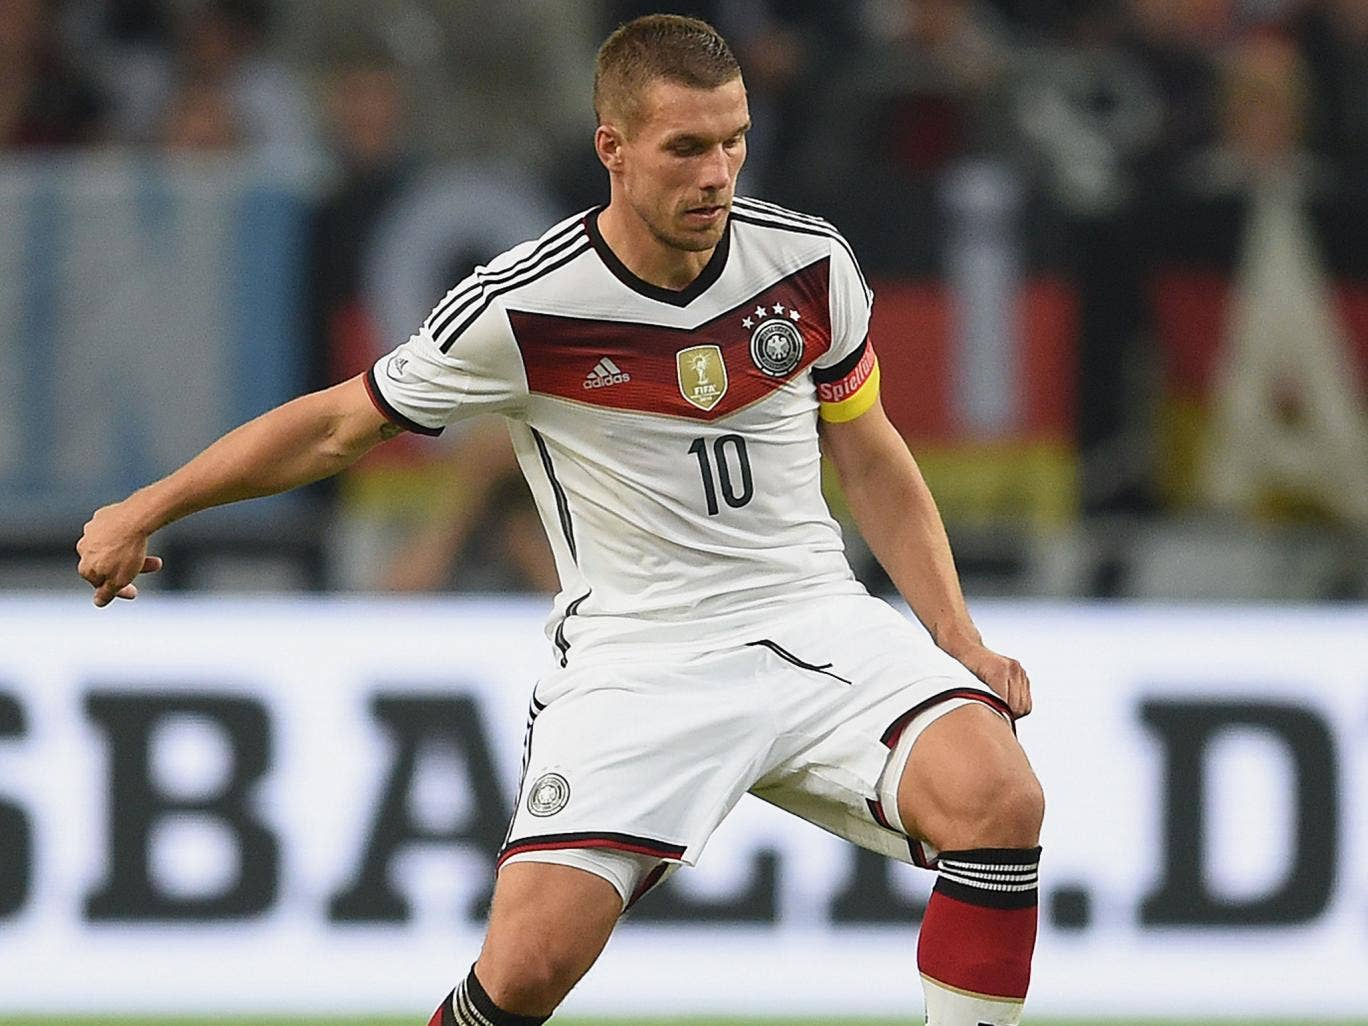 Lukas Podolski in action for Germany against Argentina last night